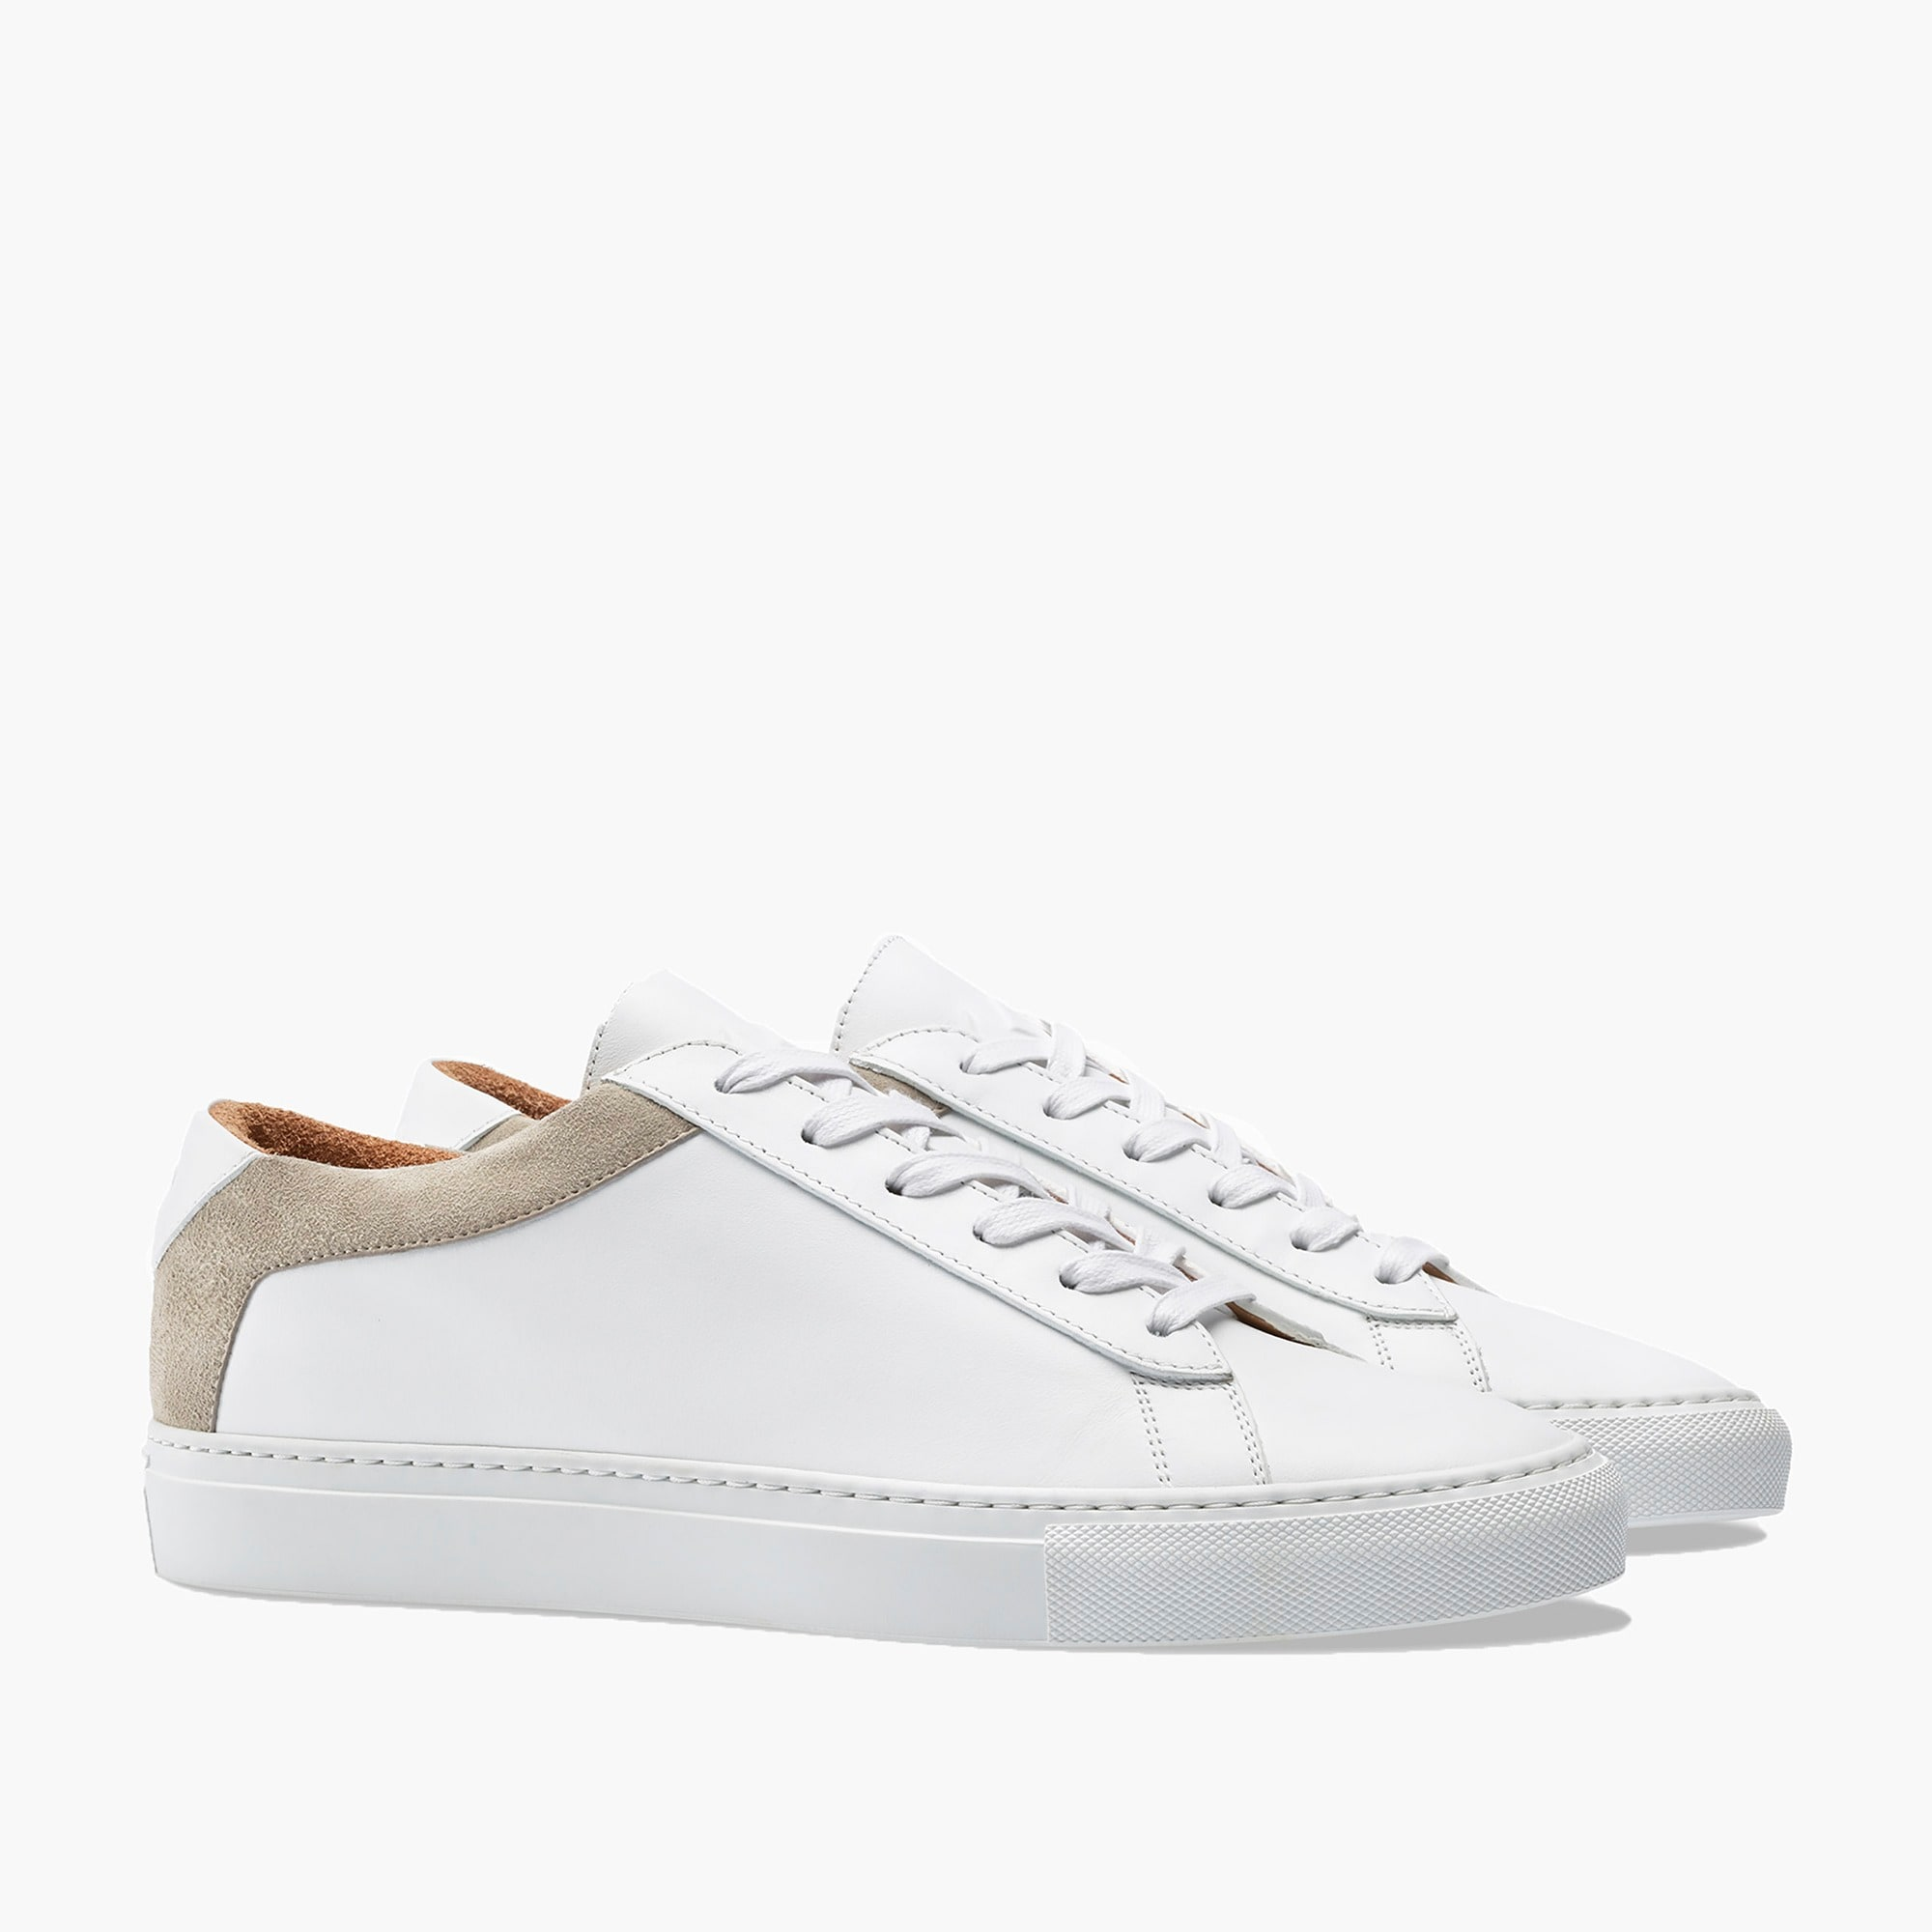 Unisex Koio Capri Bianco sneakers women j.crew in good company c